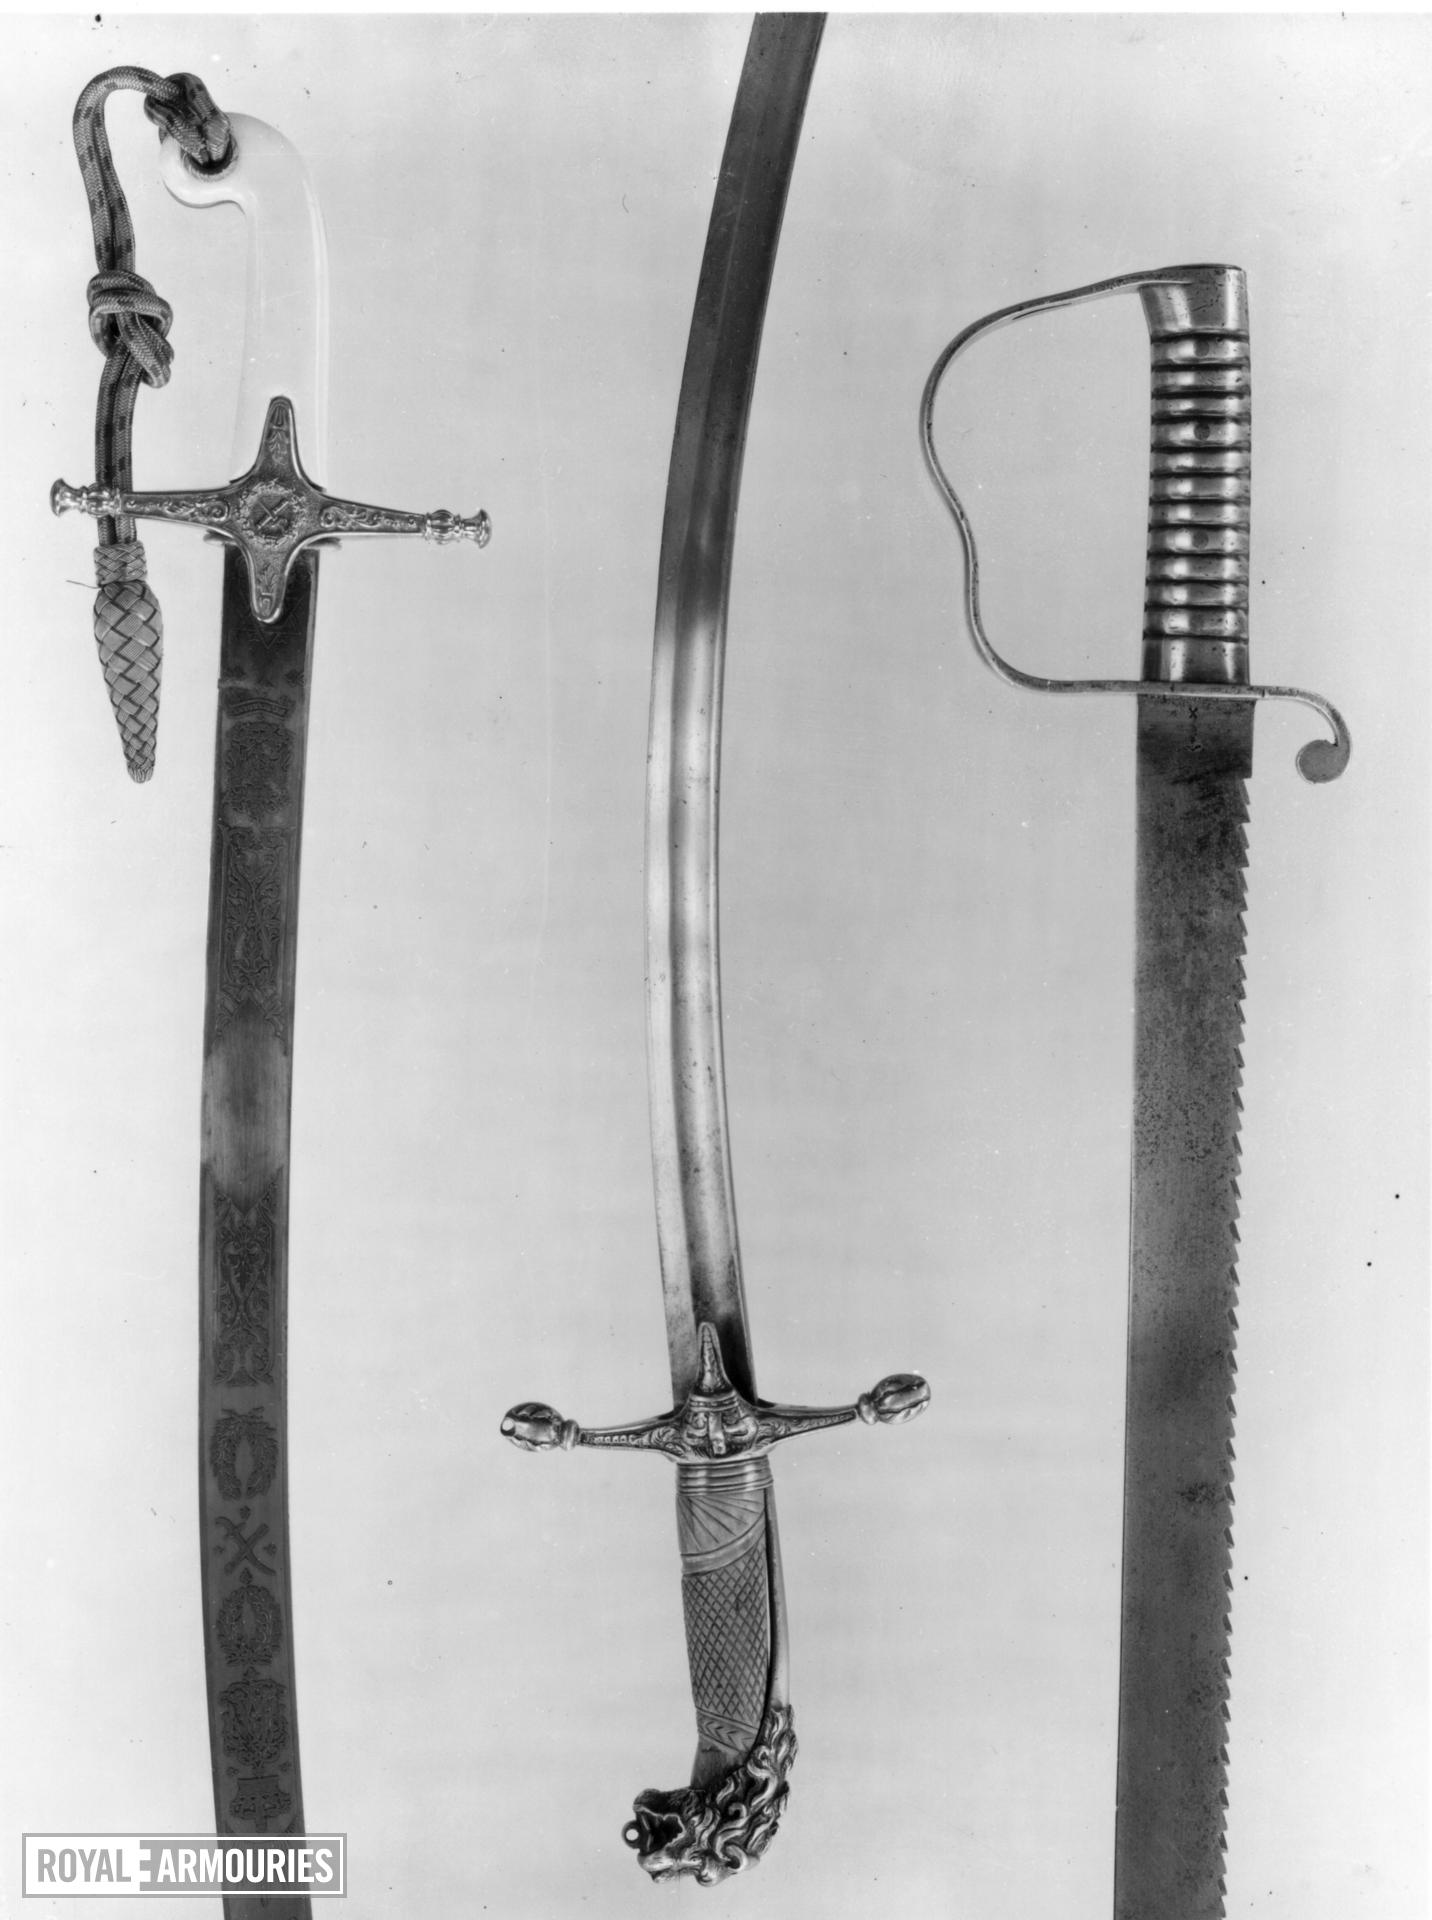 Sword Band sword. Mameluke-type hilt, lion's head pommel, bone grip and crown on ecusson - Royal Armouries band type M.